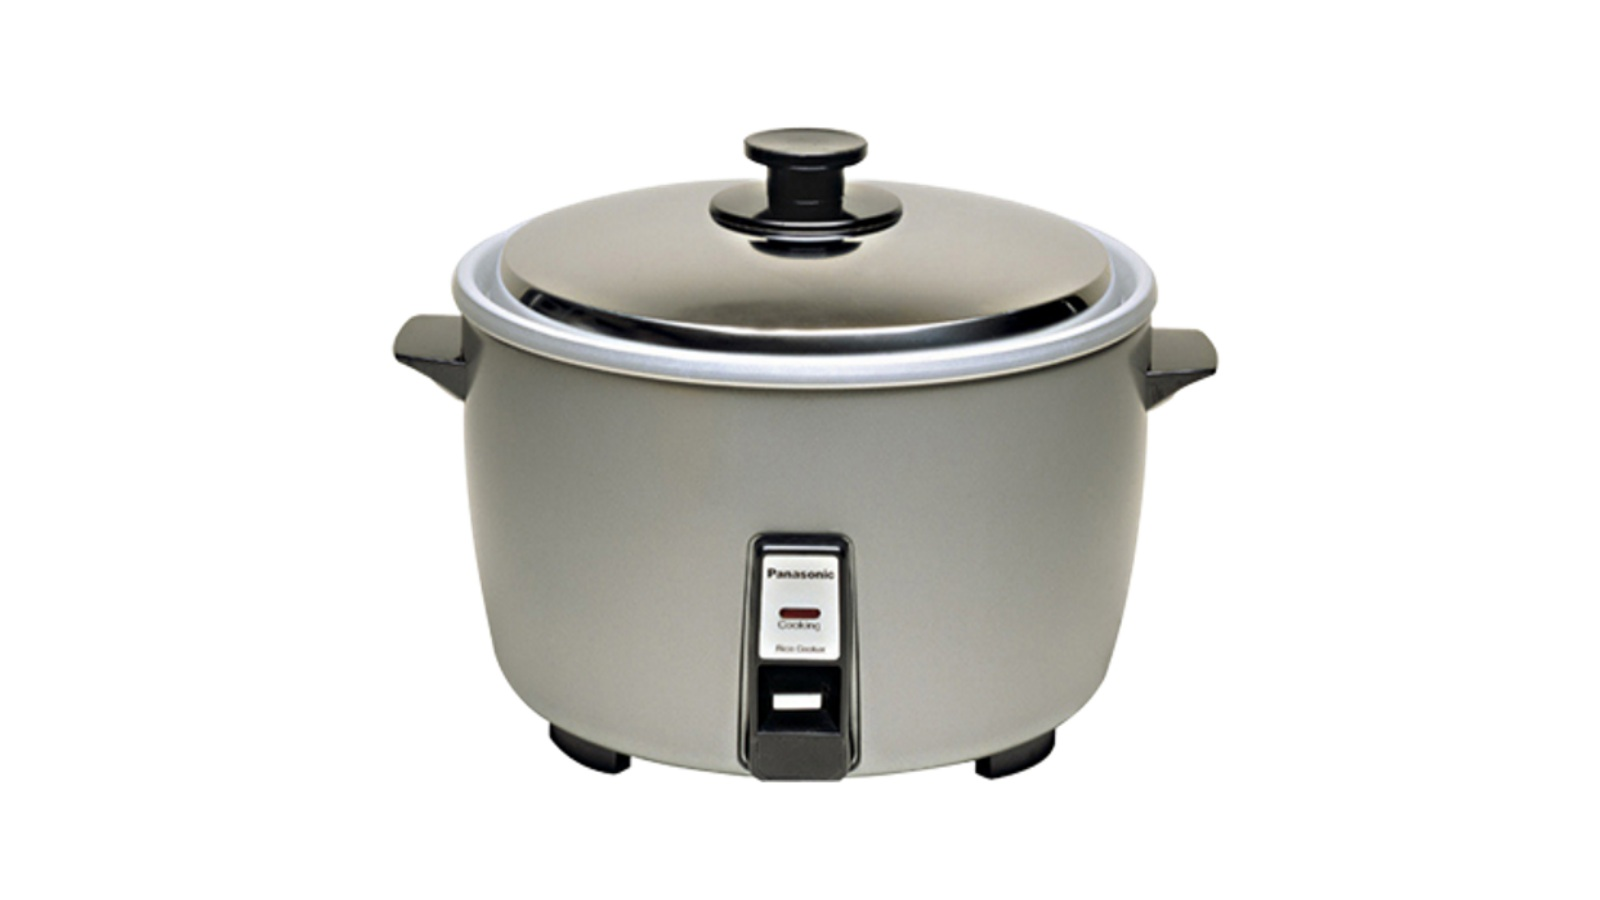 Commercial Electric Rice Cooker ~ Panasonic commercial electric rice cooker harvey norman